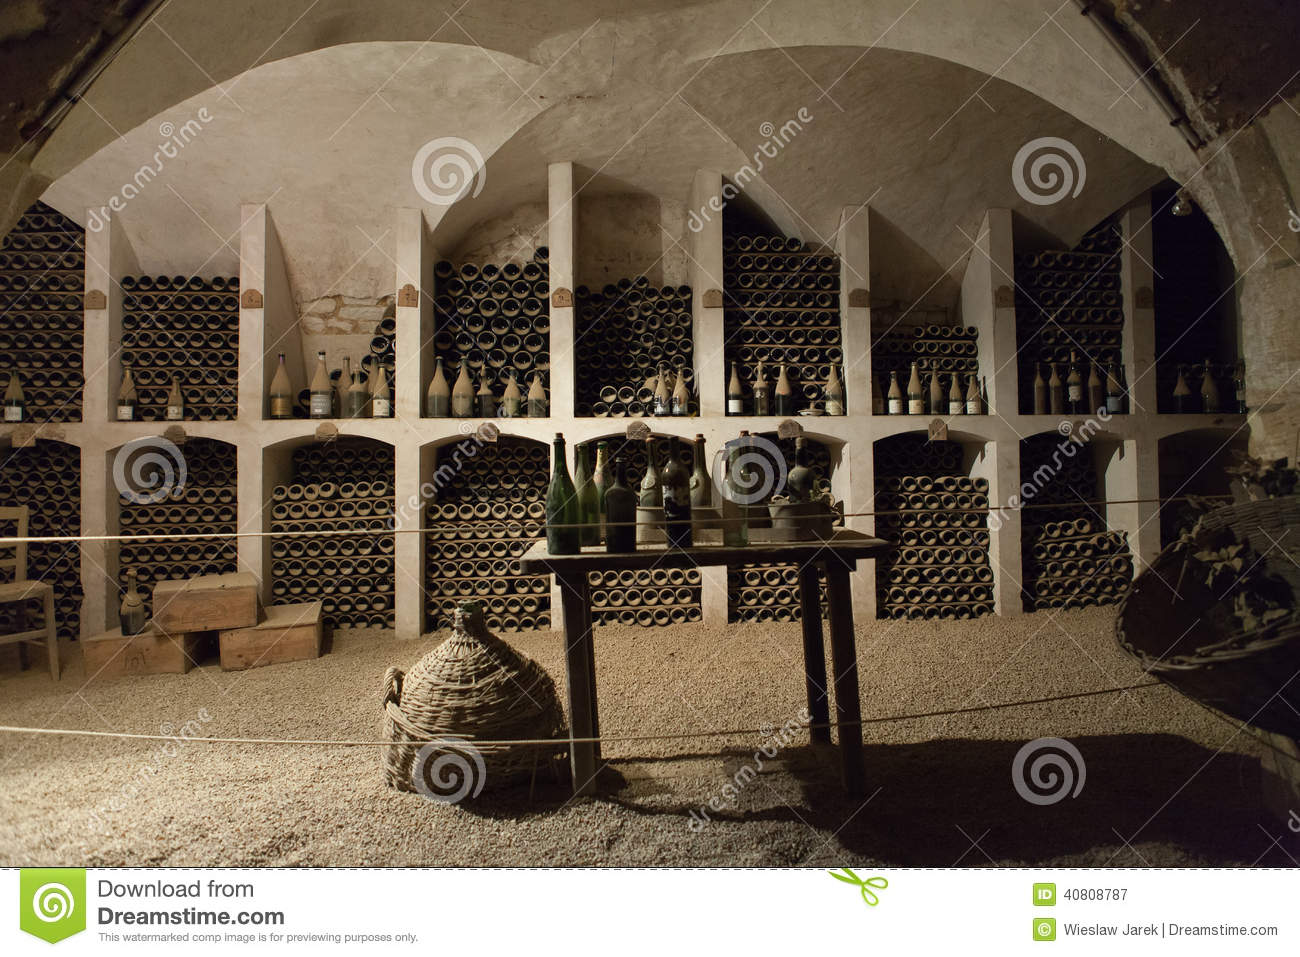 la cave au stockage du vin dans le ch teau valencay image stock image 40808787. Black Bedroom Furniture Sets. Home Design Ideas